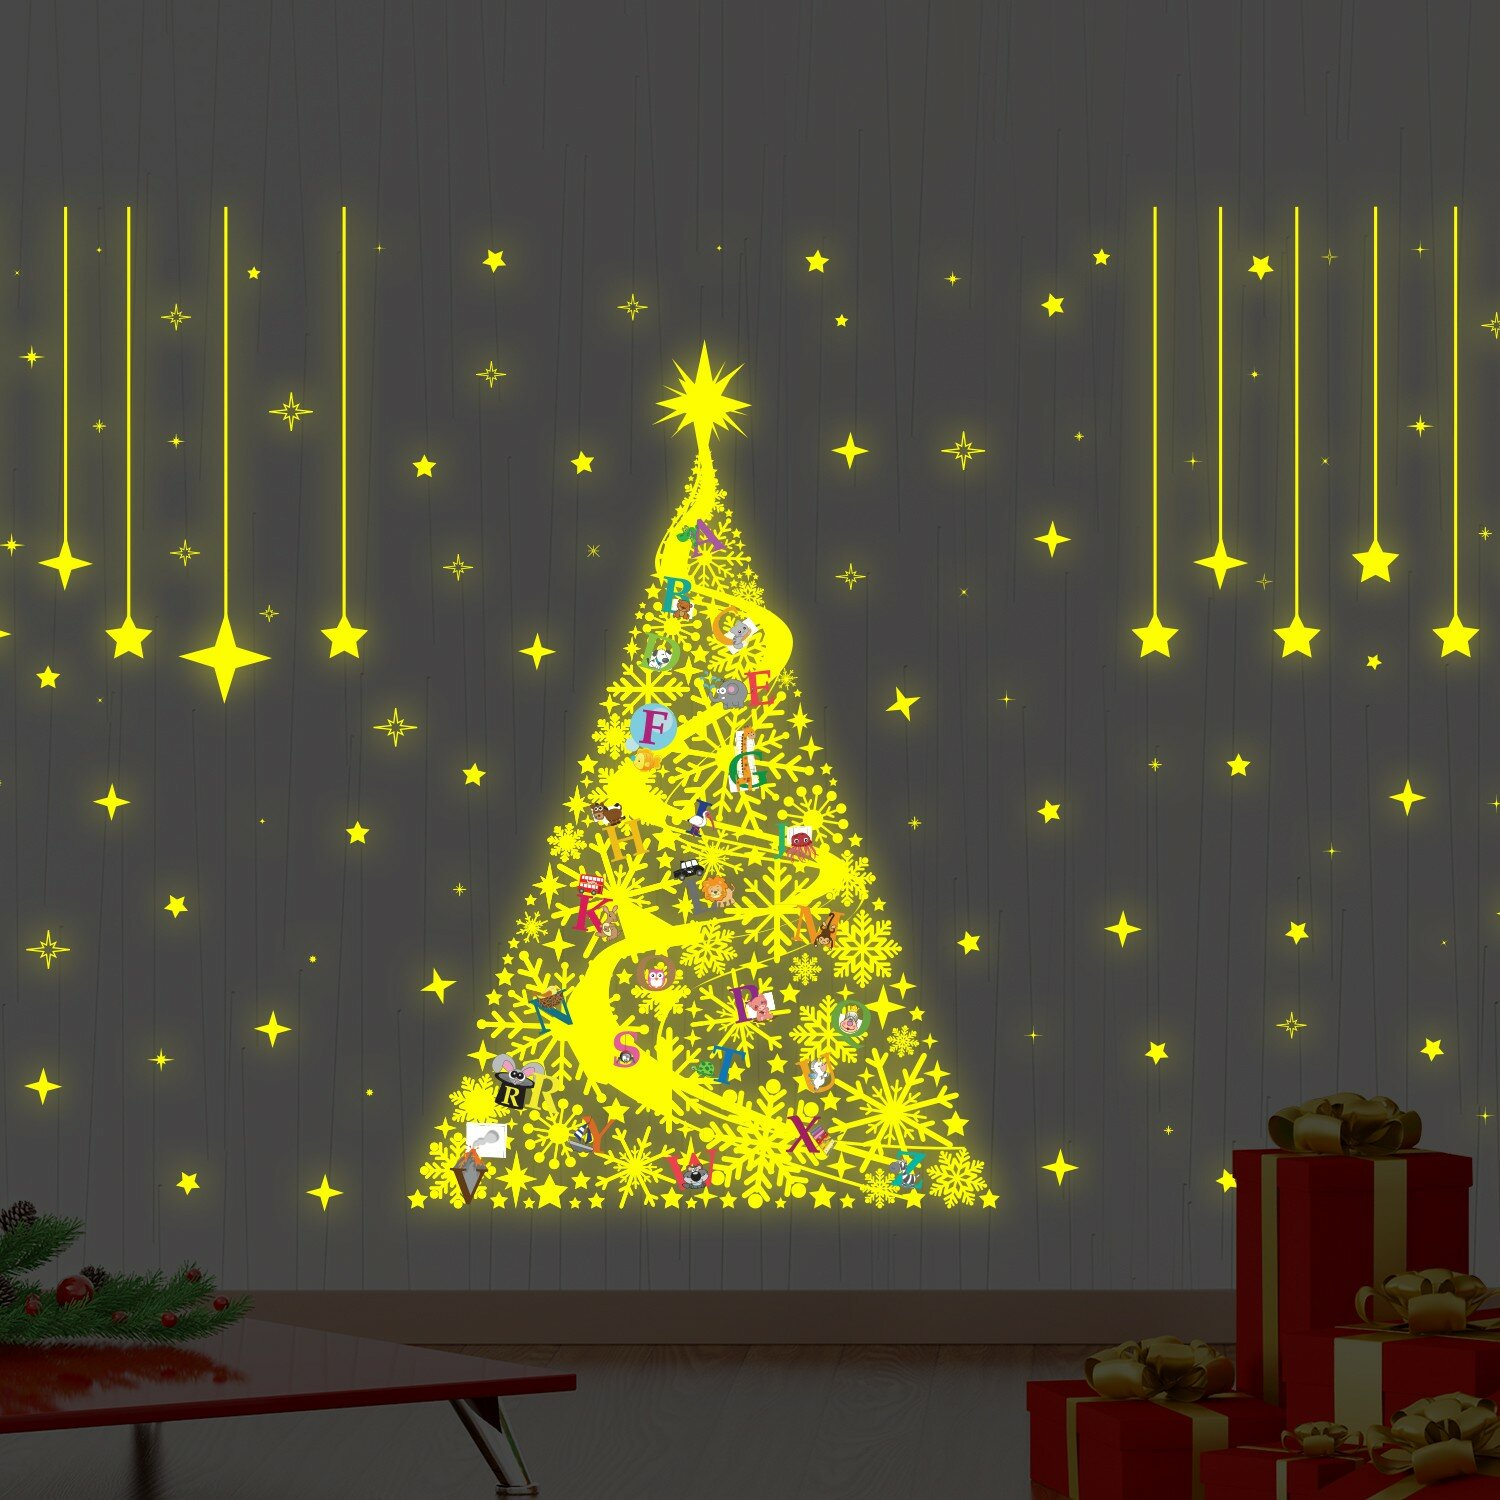 The Holiday Aisle Learn the ABC Magic Glow in Dark Christmas Wall ...